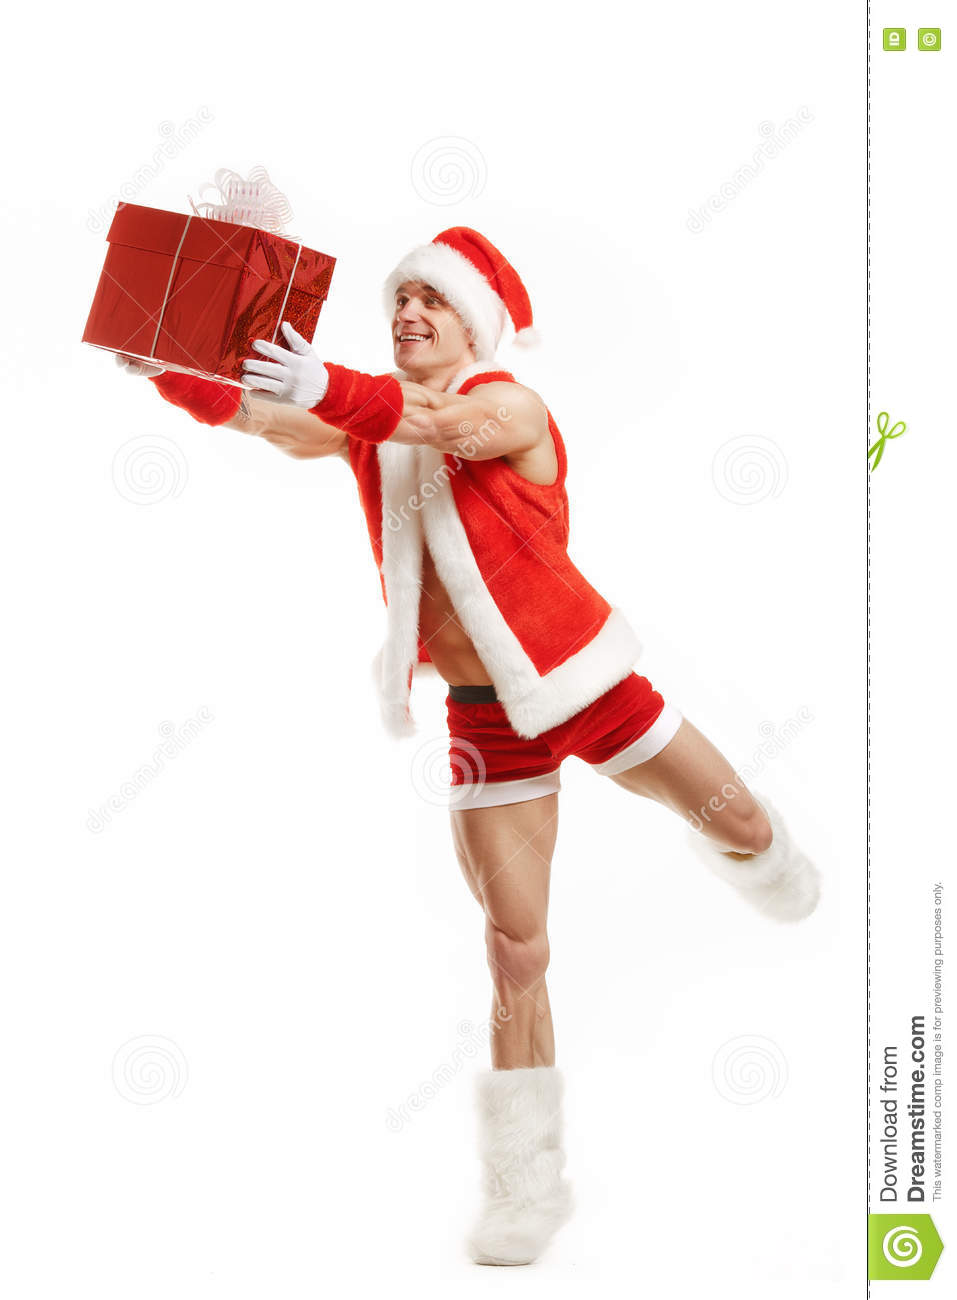 Cheerful fitness Santa Claus holding a red box